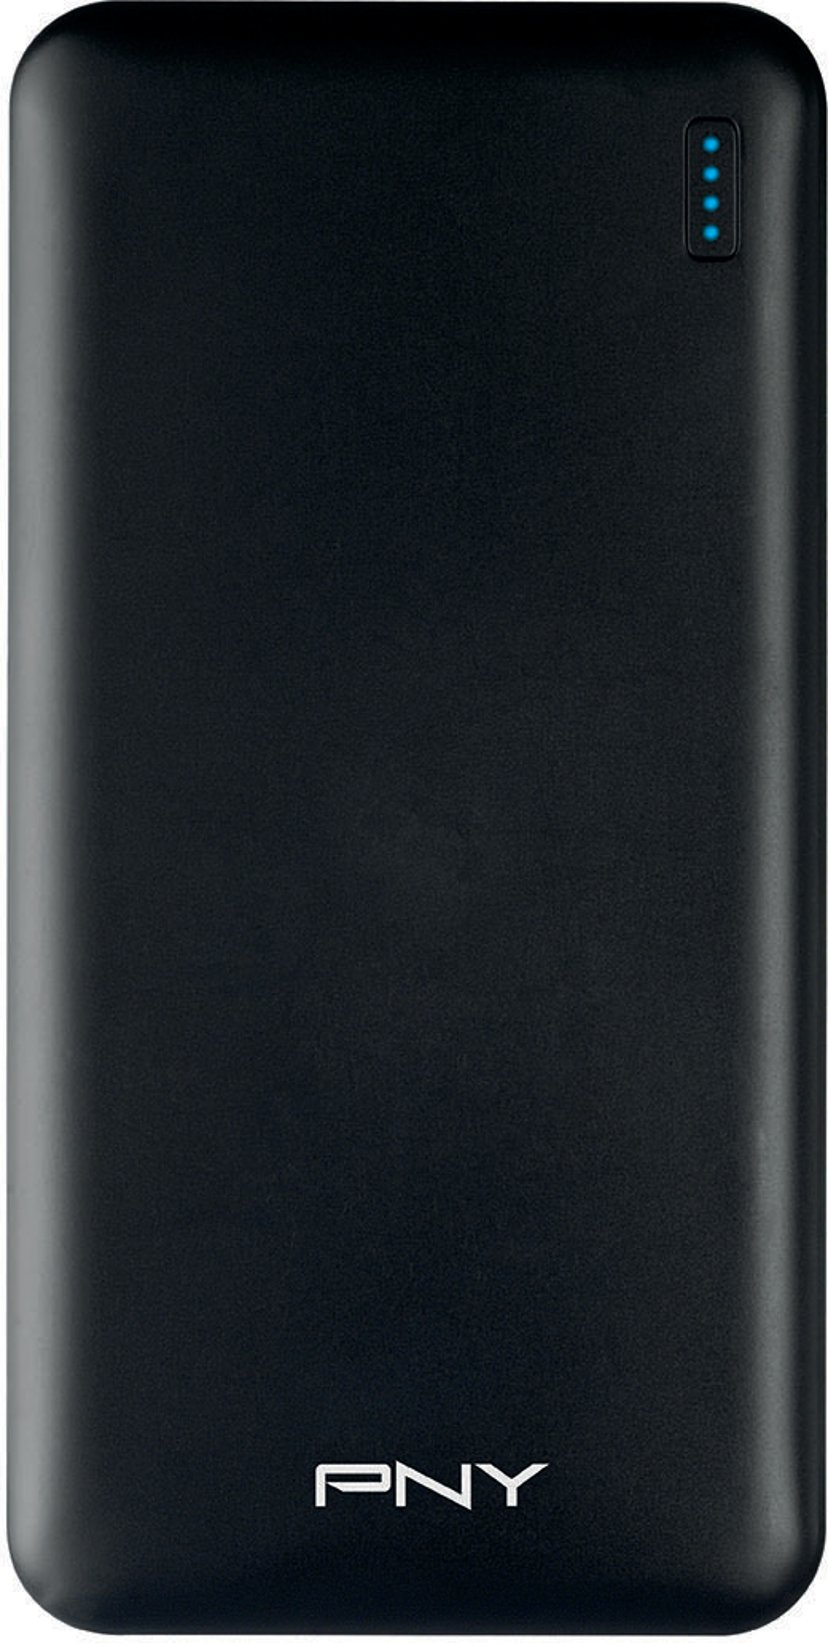 PNY Powerbank Slim 20,000milliampere hour 3.4A Svart